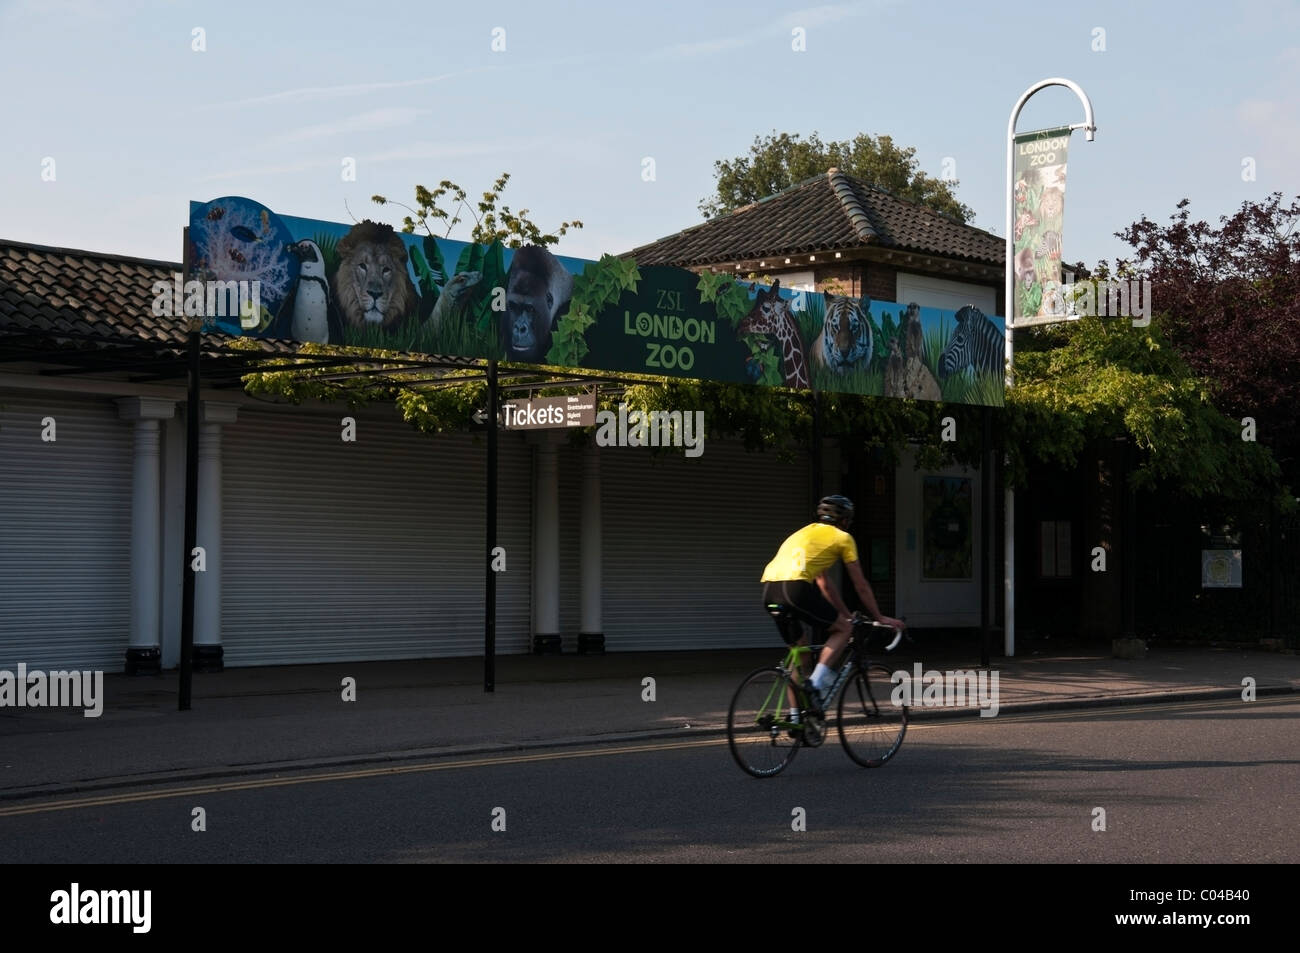 London Zoo sign, Zoological Gardens entrance and biker in yellow t-shirt, Regents Park, England, UK, Europe, EU - Stock Image